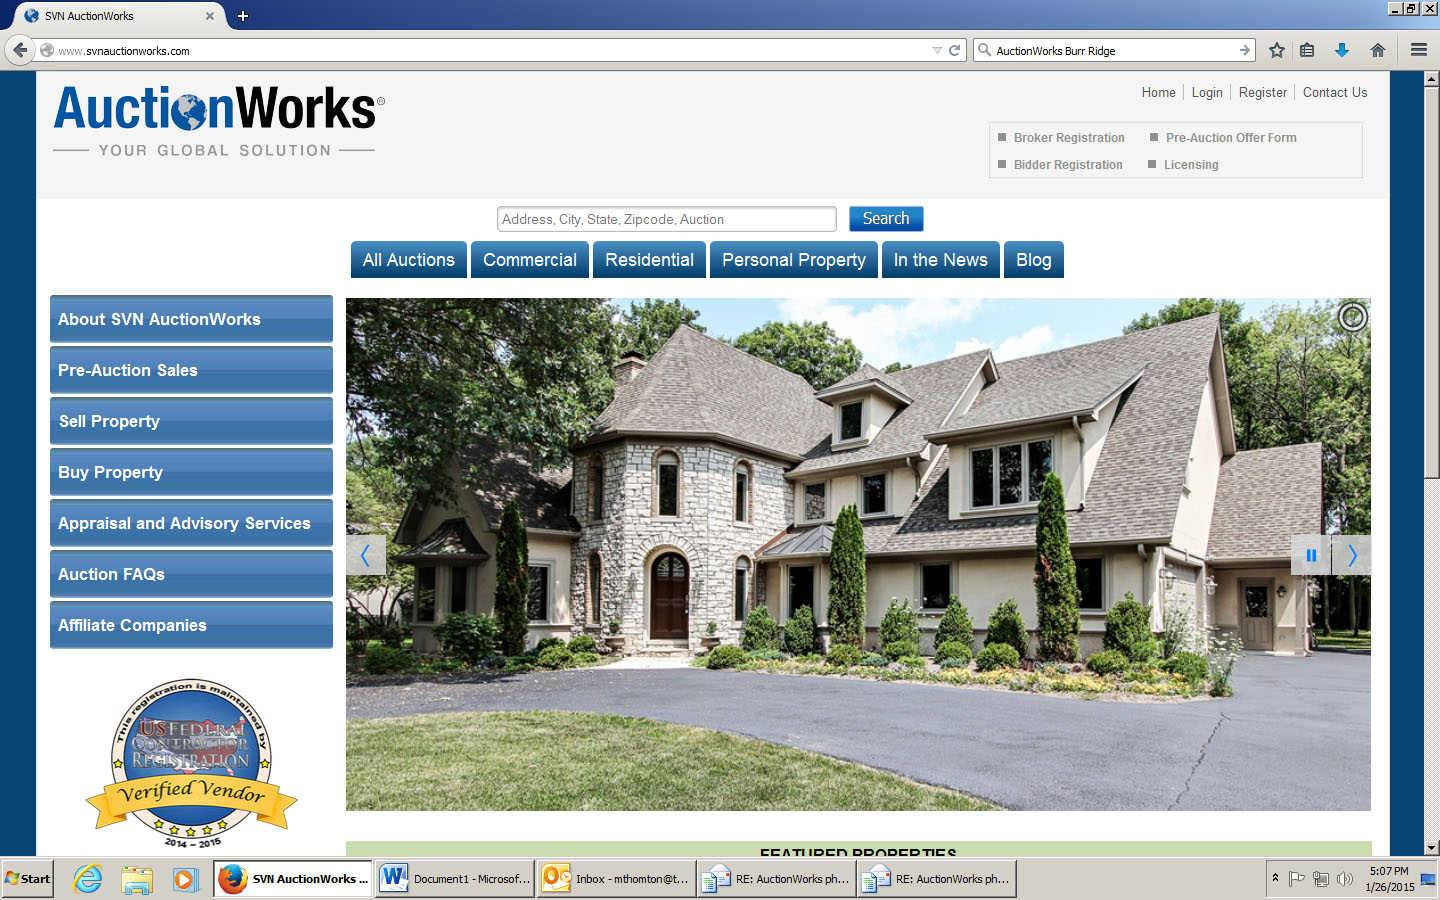 SVNAuctionWorks.com offers online auctions for residential and commercial properties. But the site's president, Diana M. Peterson of Glencoe, says the auctions for luxury homes in Naperville, Riverwoods, Burr Ridge and other suburbs attract the most attention.